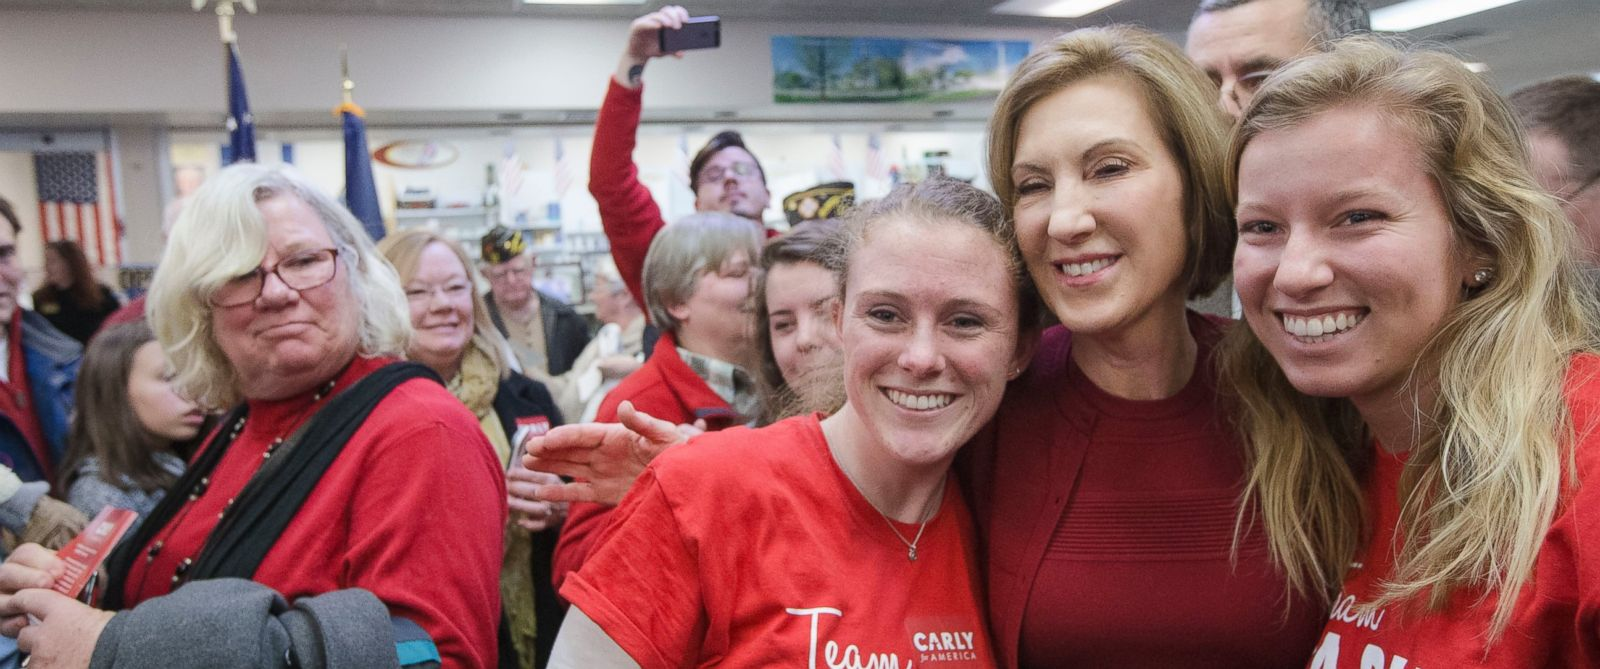 PHOTO: Republican presidential candidate, businesswoman Carly Fiorina has a selfie taken with supporters during a campaign stop at Hollis Pharmacy, Friday, Jan. 15, 2016, in Hollis, N.H.